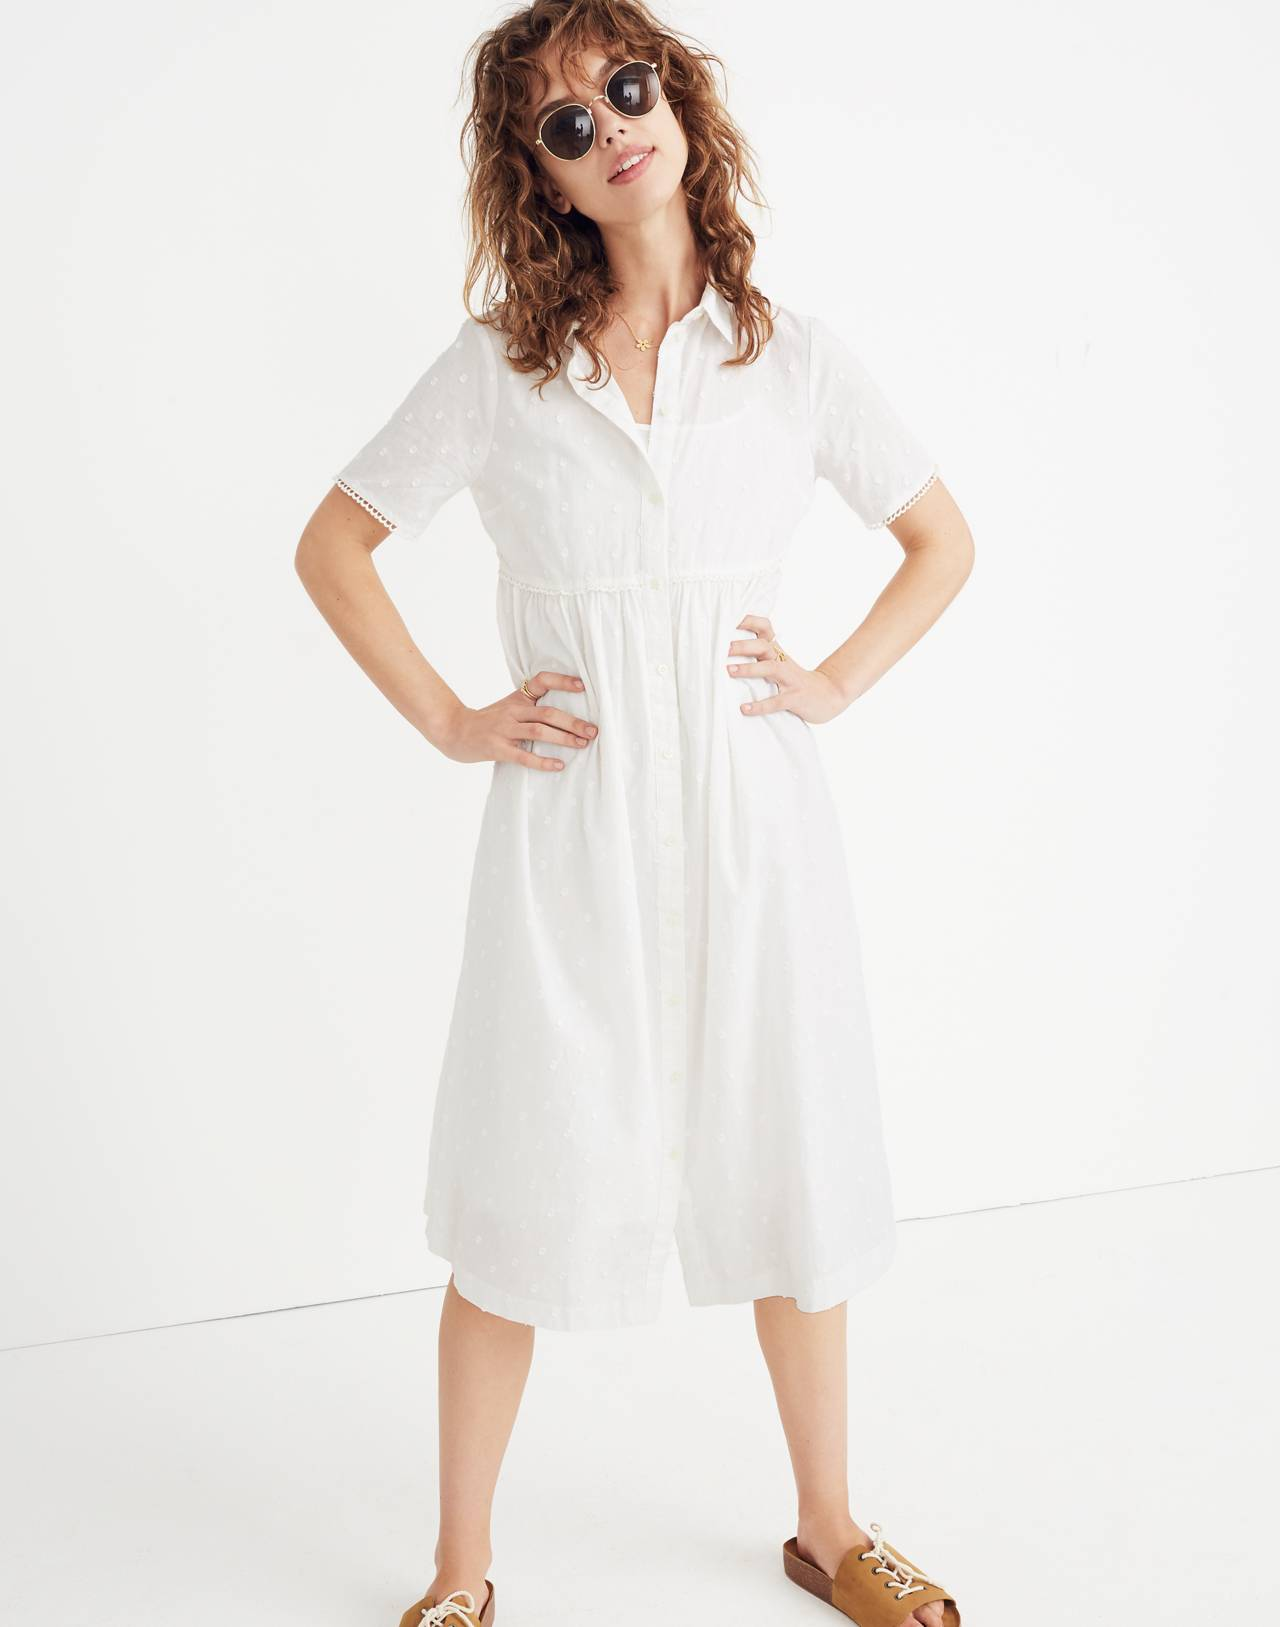 Clipdot Midi Shirtdress in eyelet white image 1